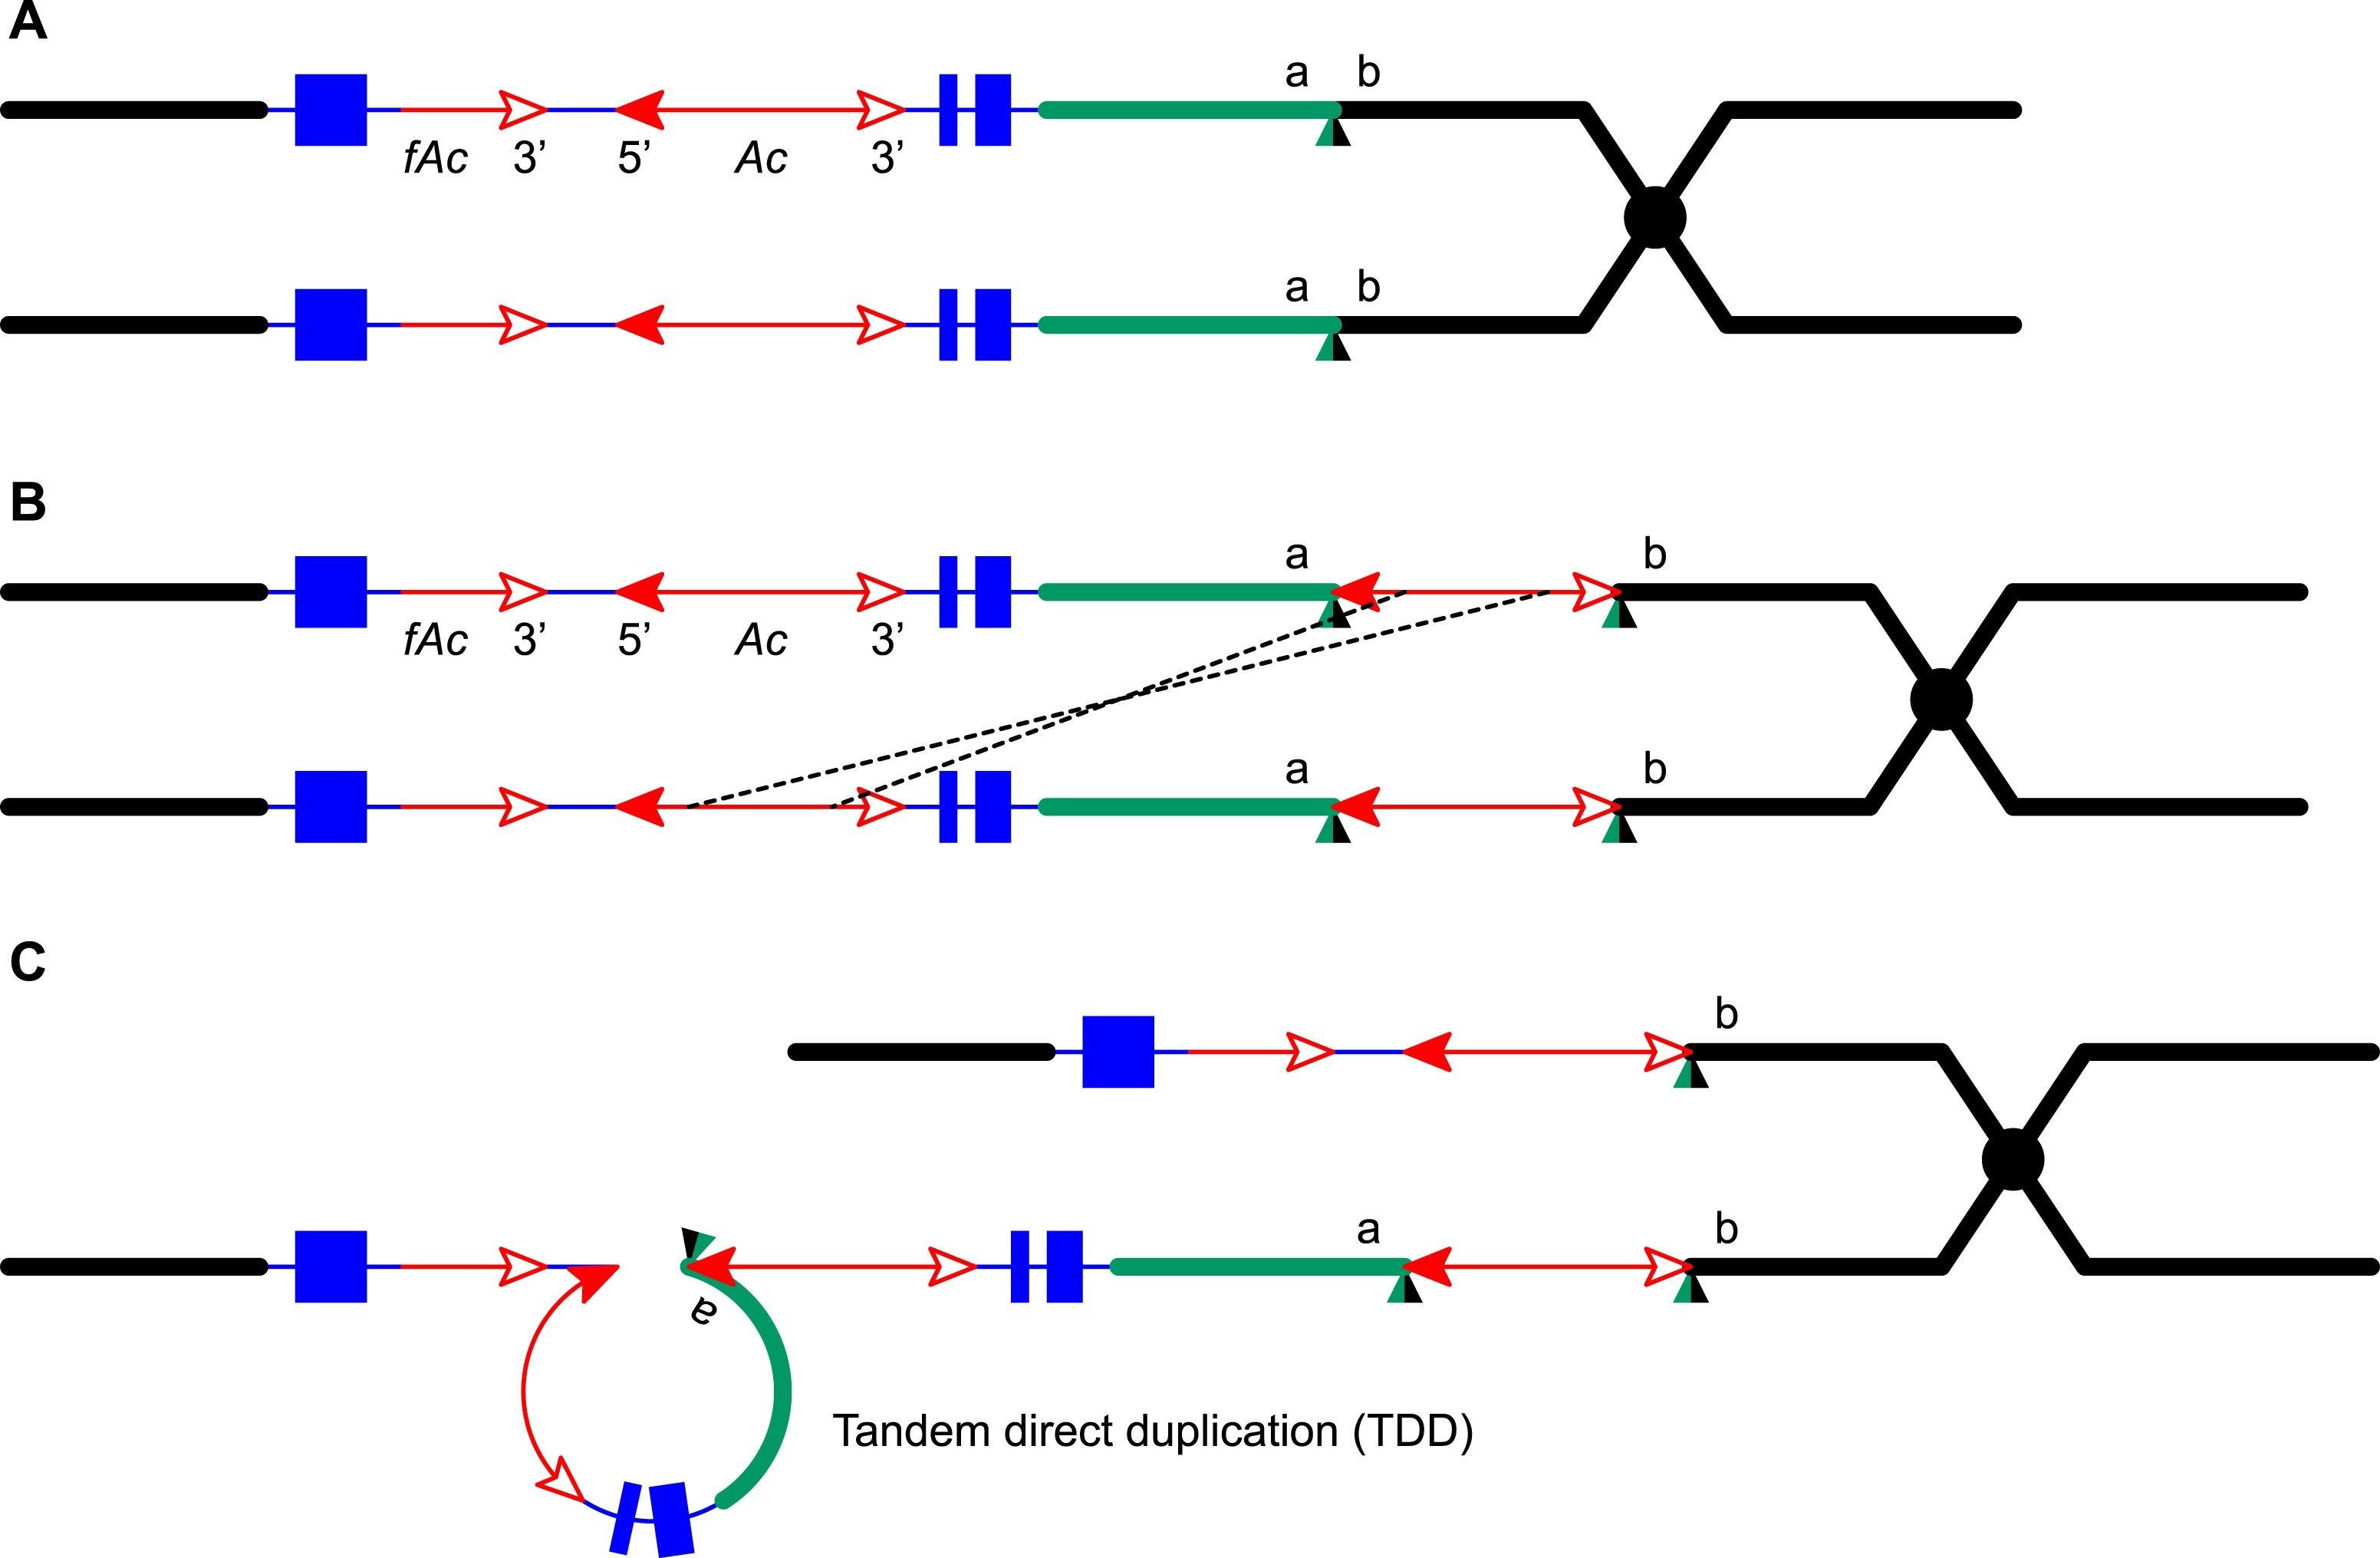 Transposition Mediated Dna Re Replication In Maize Elife